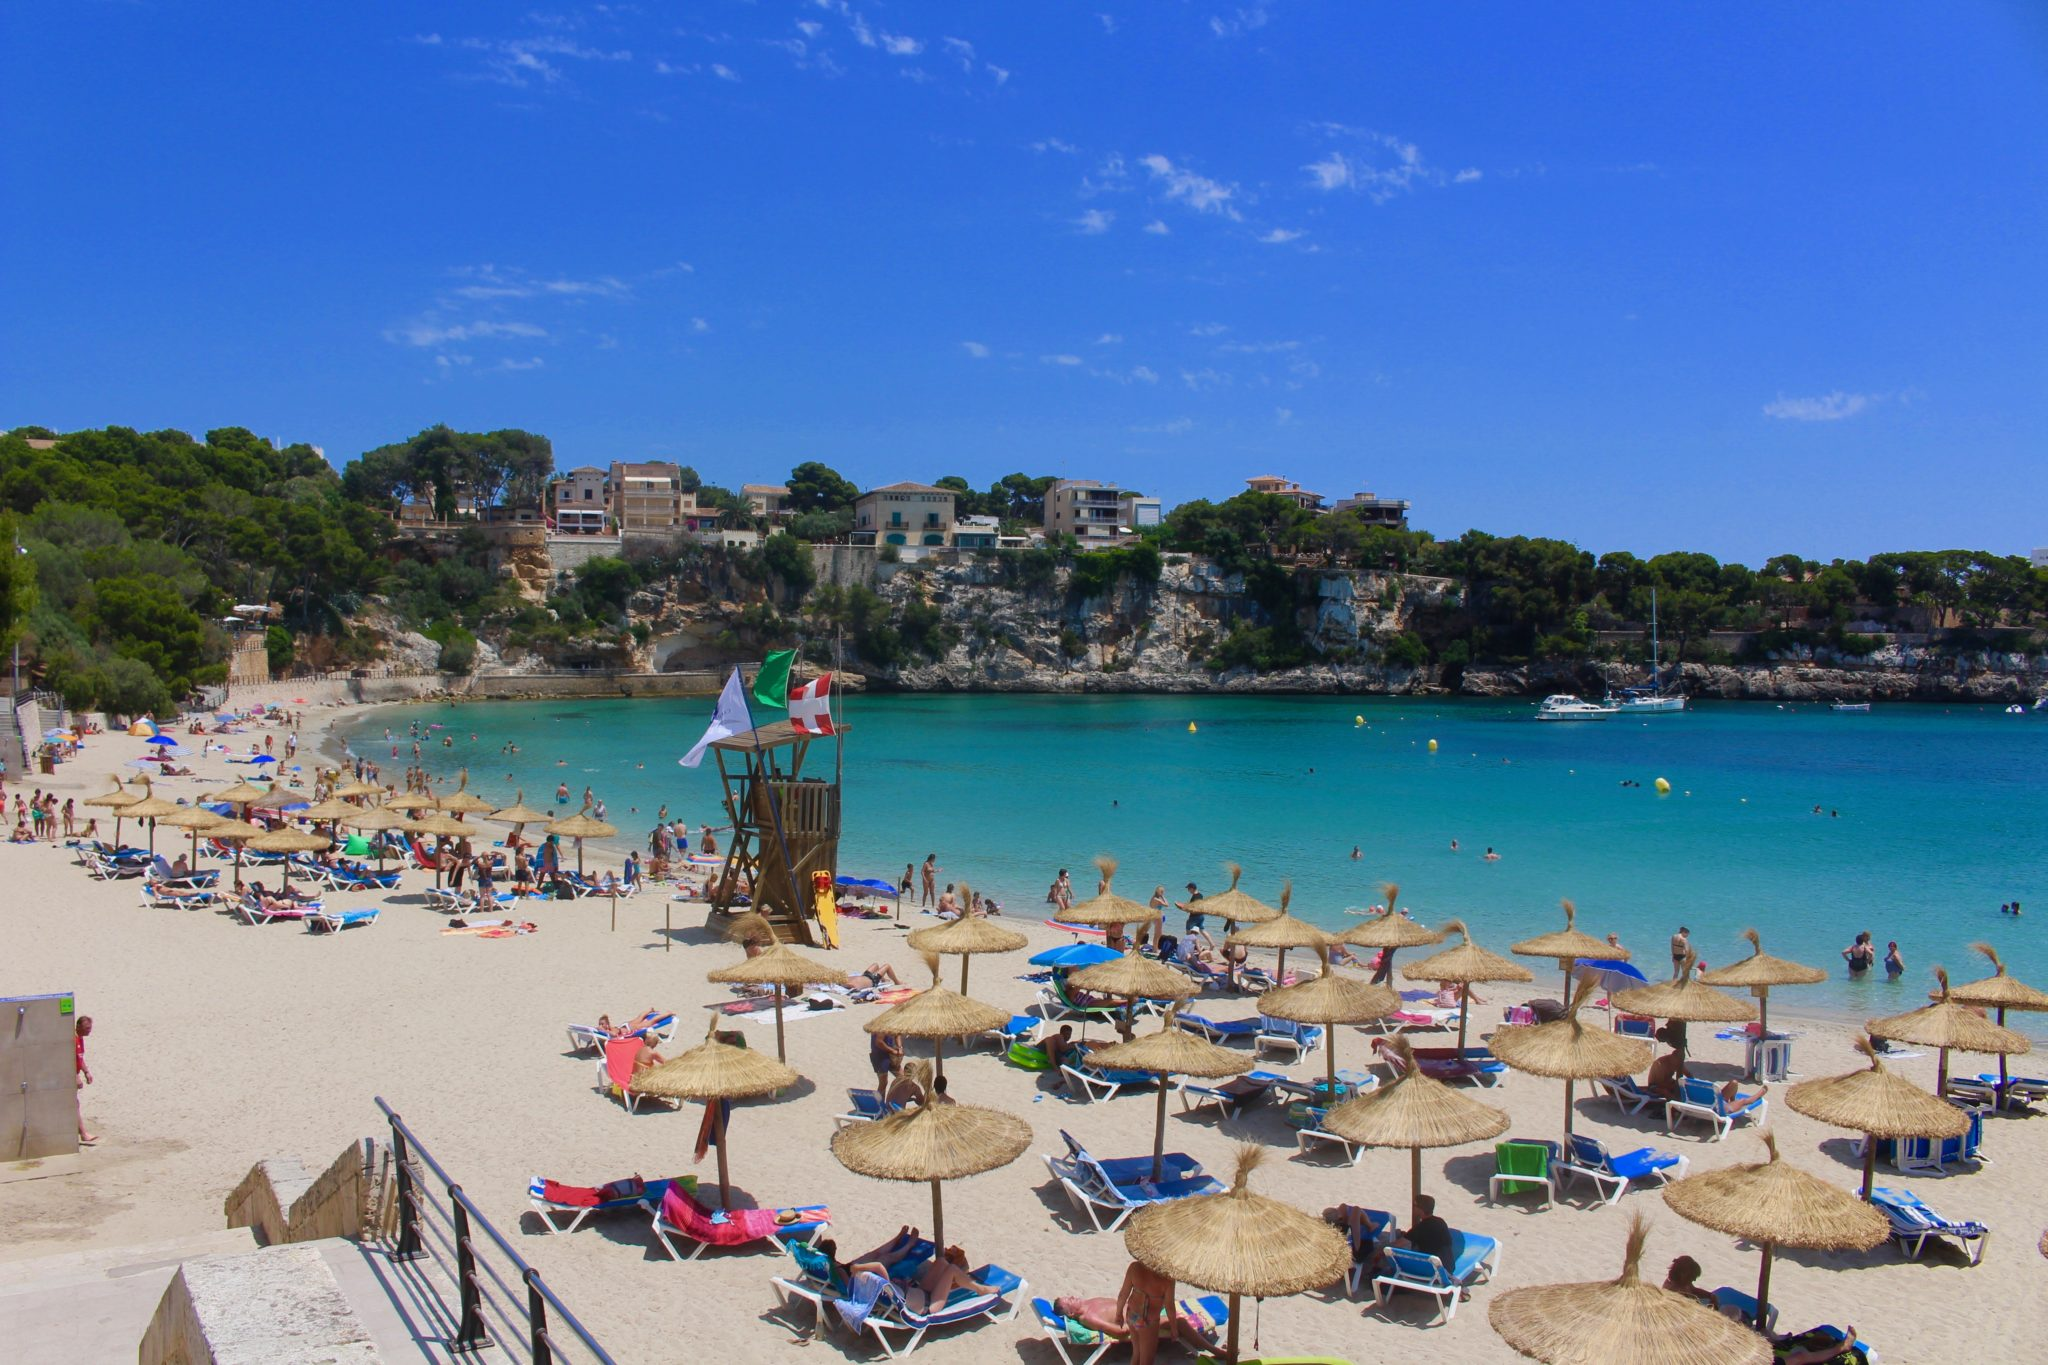 Dreamy Day Trips in Mallorca – Local markets, cafes on the beach & turquoise water